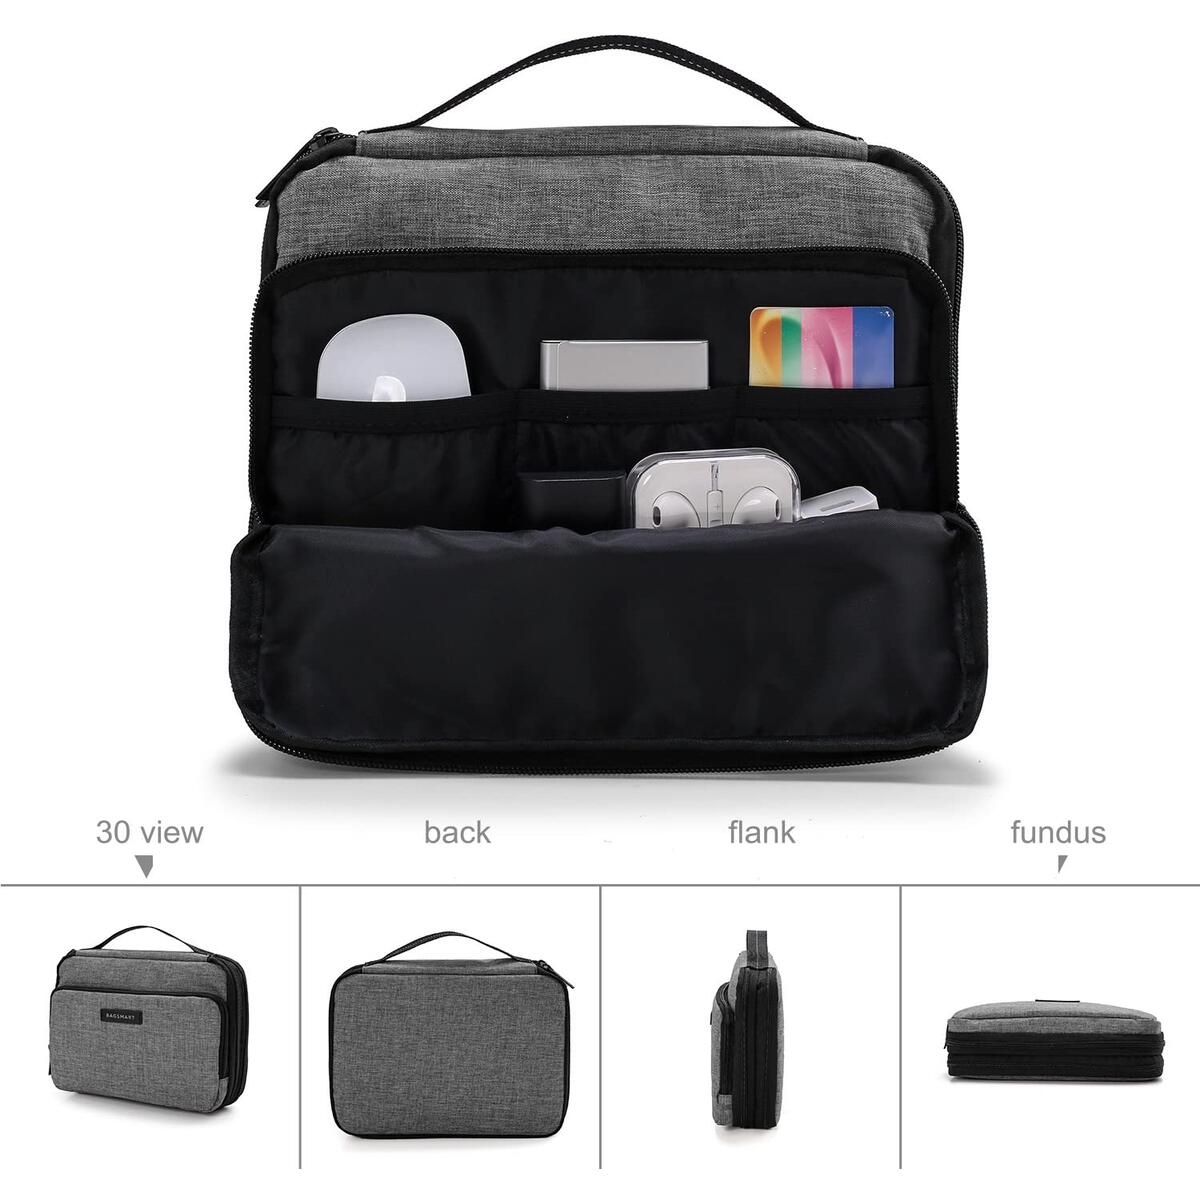 BAGSMART 3-Layer Travel Electronics Cable Organizer with Bag for 7.9